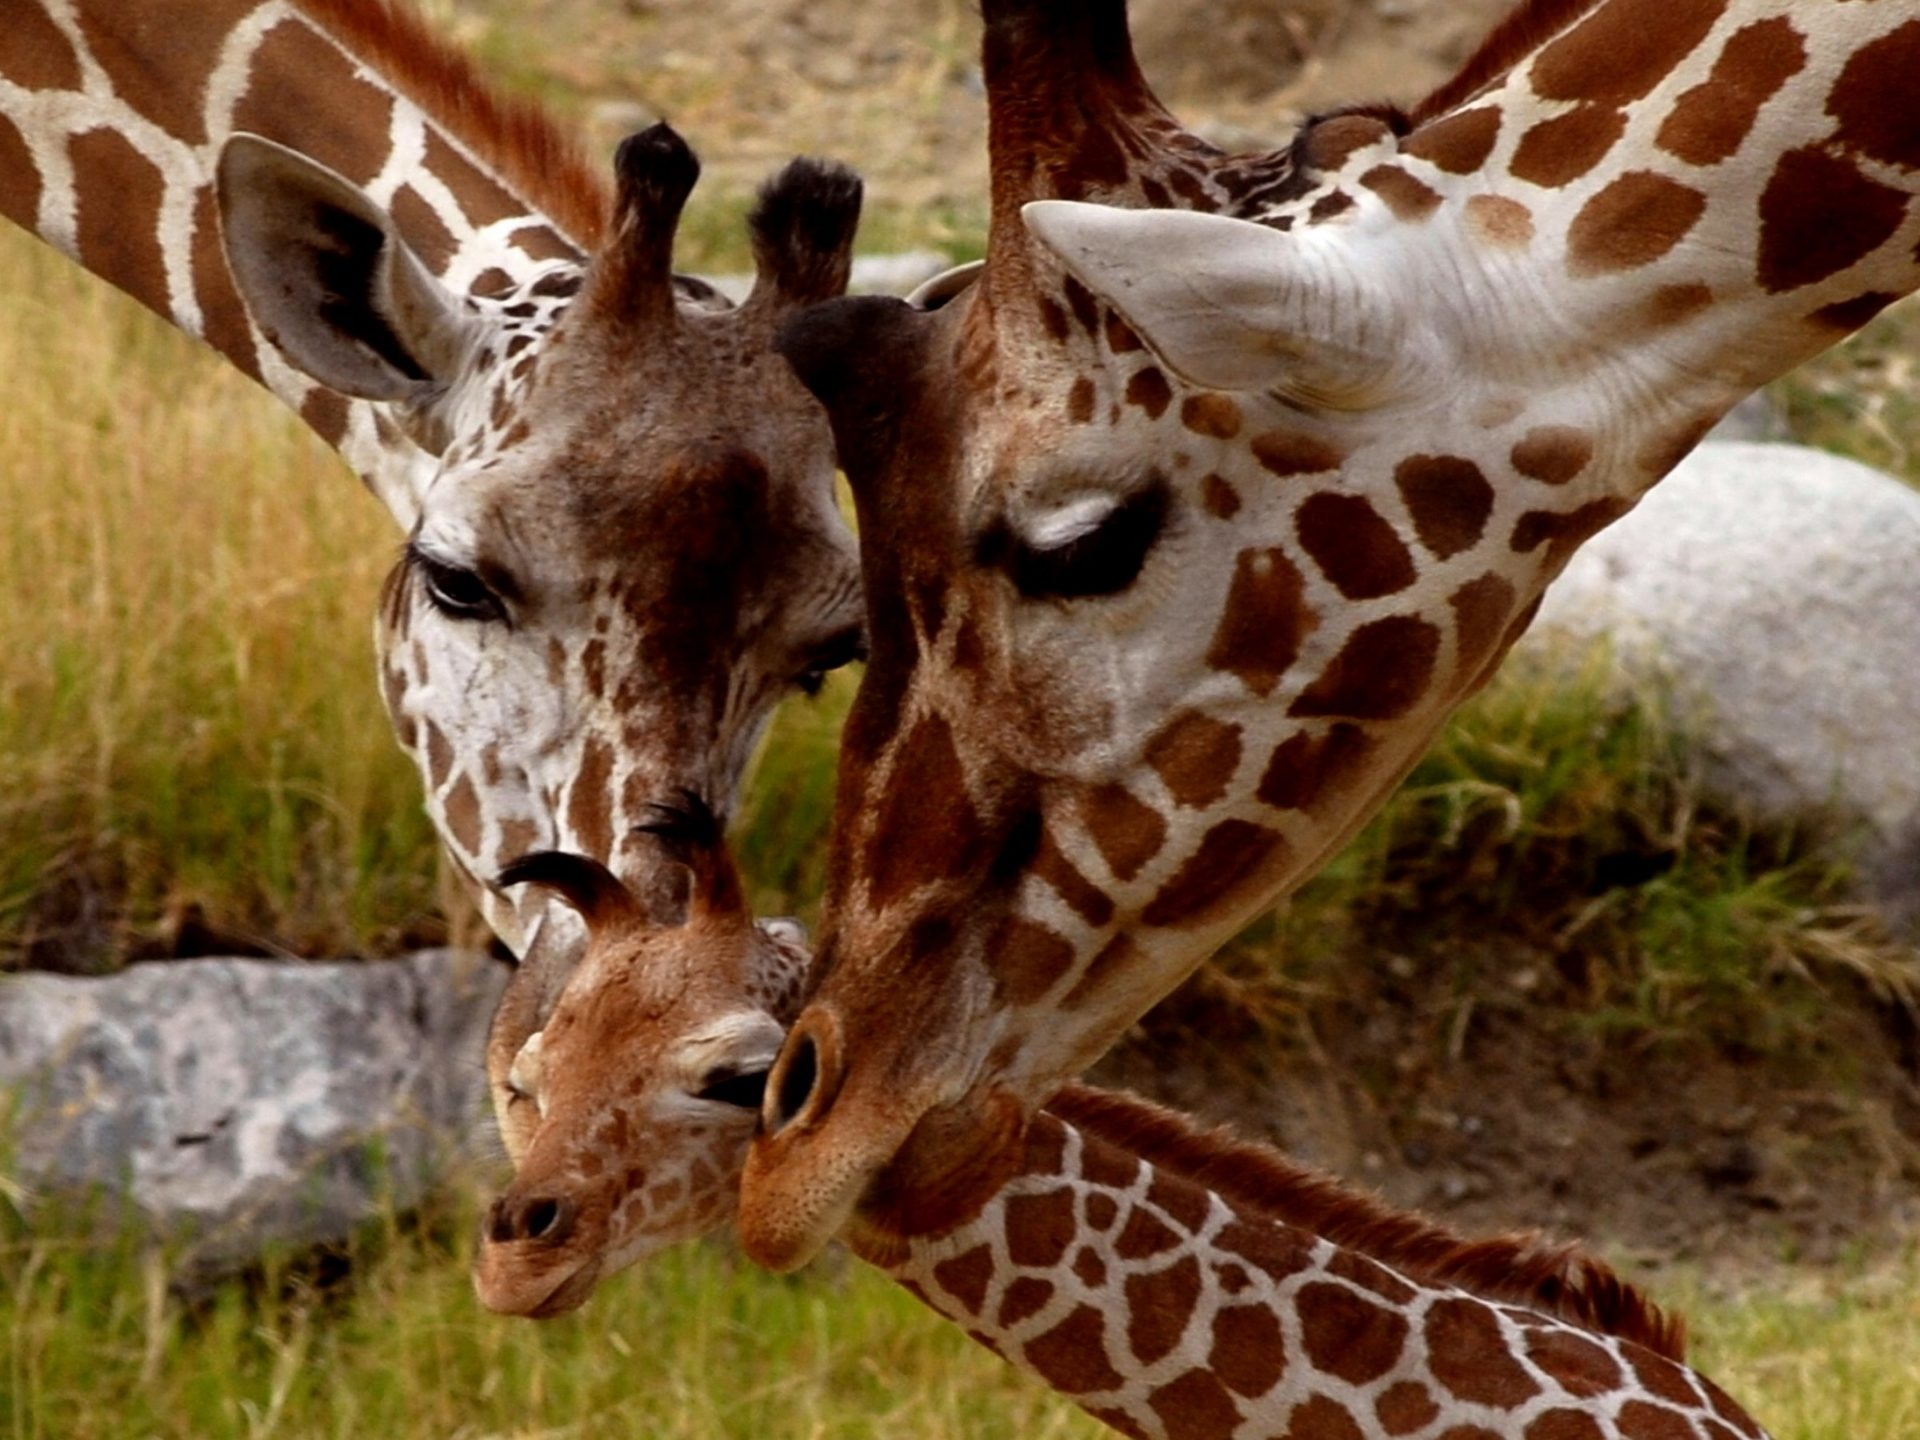 Free Hd Wallpaper For Android Tablet Giraffe Small Cub Parental Love Animals Of Africa Hd